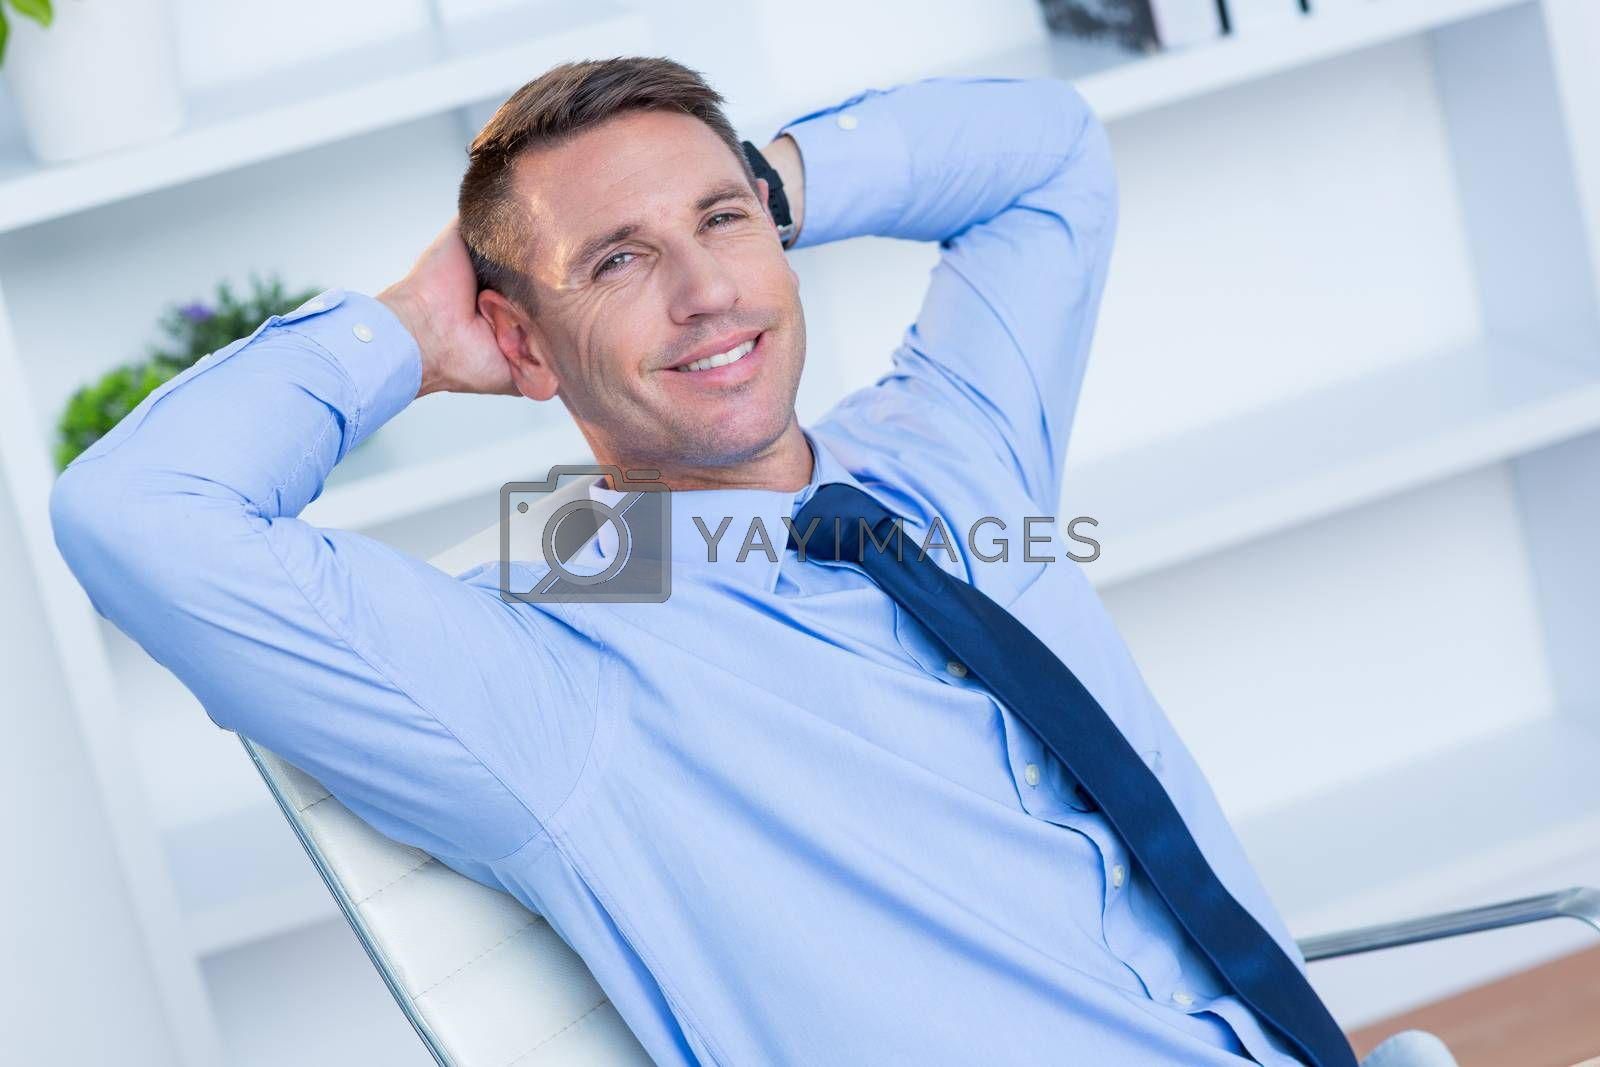 Royalty free image of Portrait of a smiling businessman by Wavebreakmedia